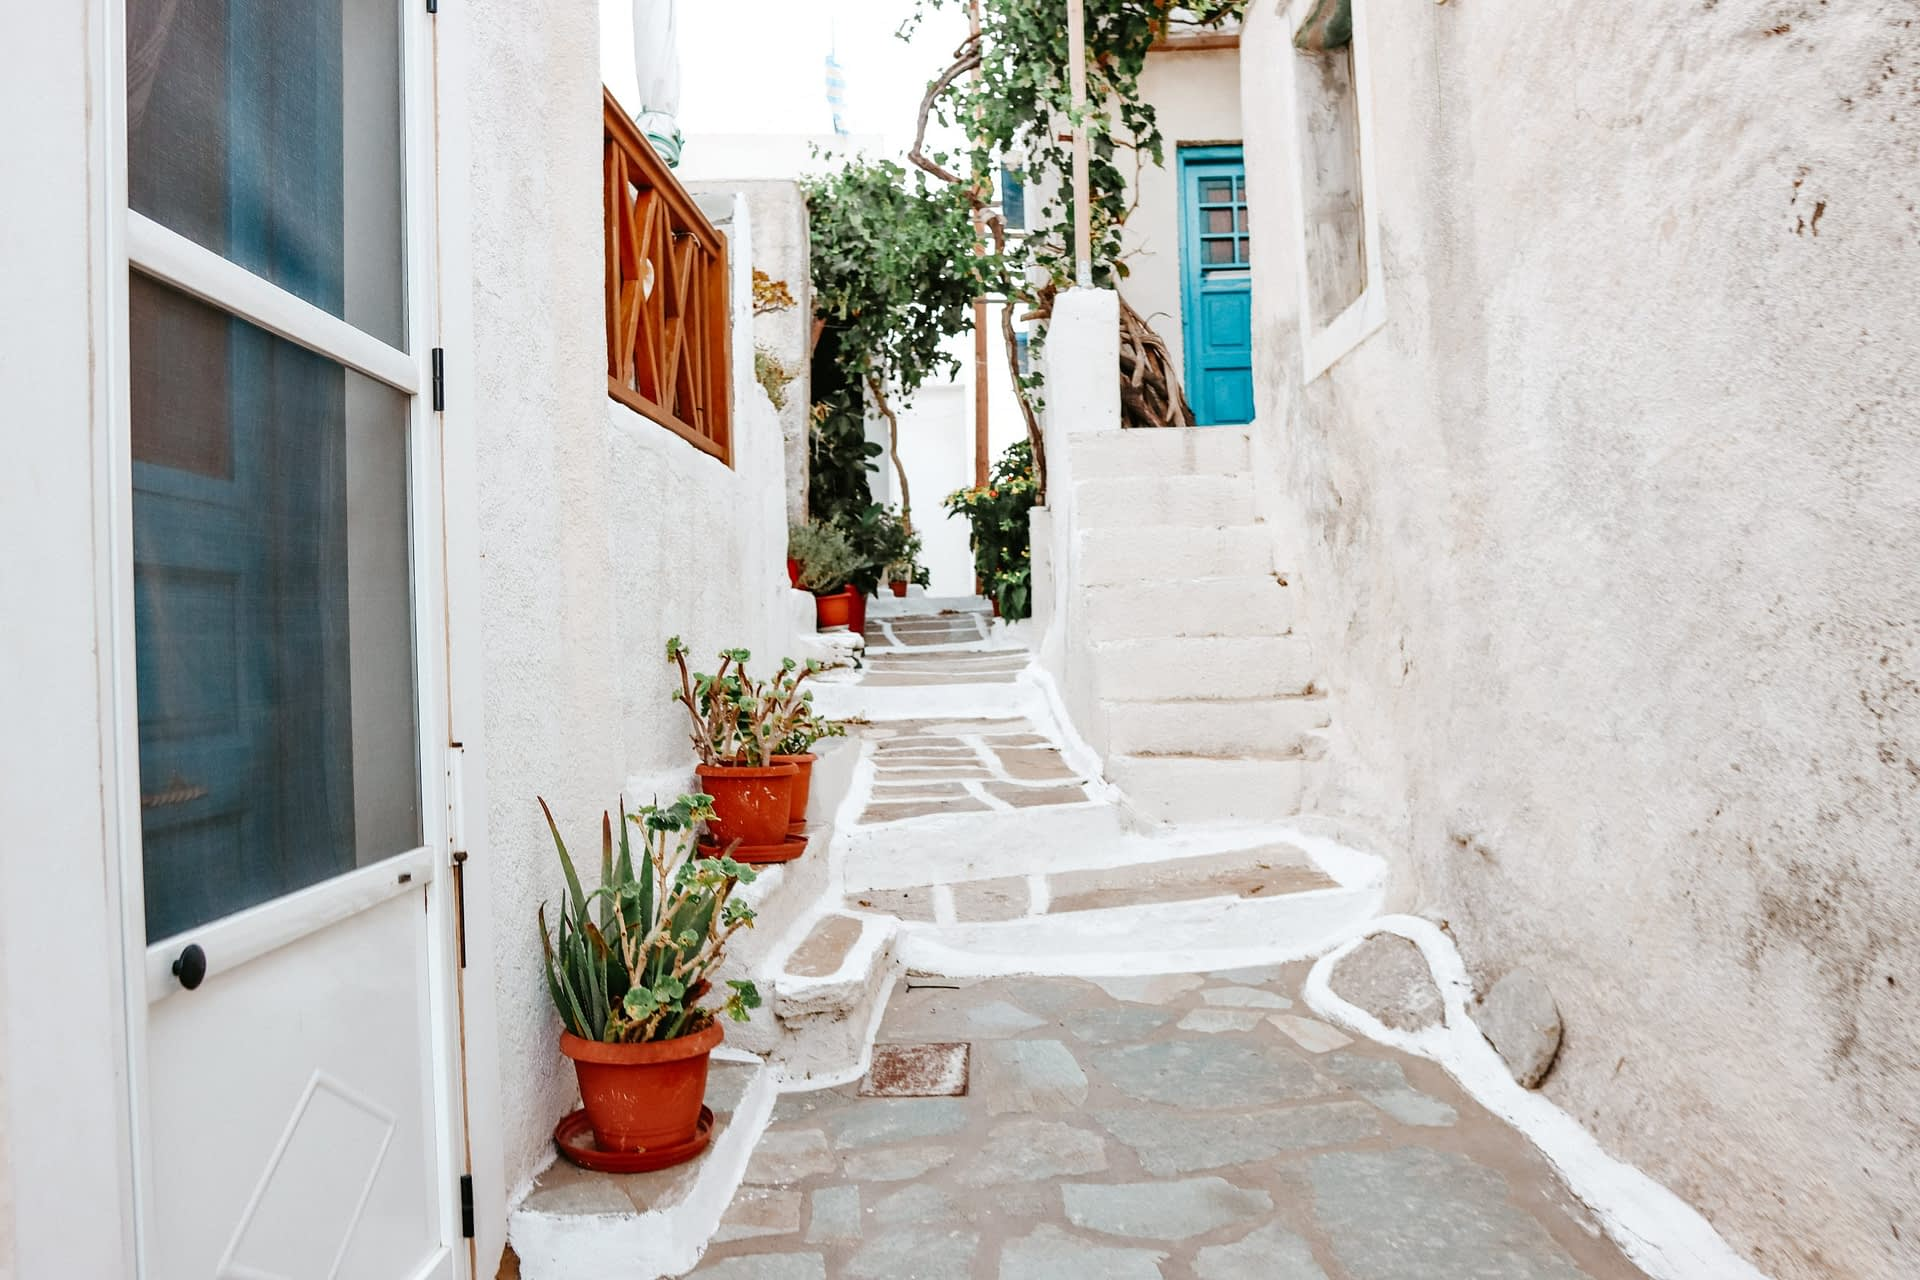 An alley at Ios Chora